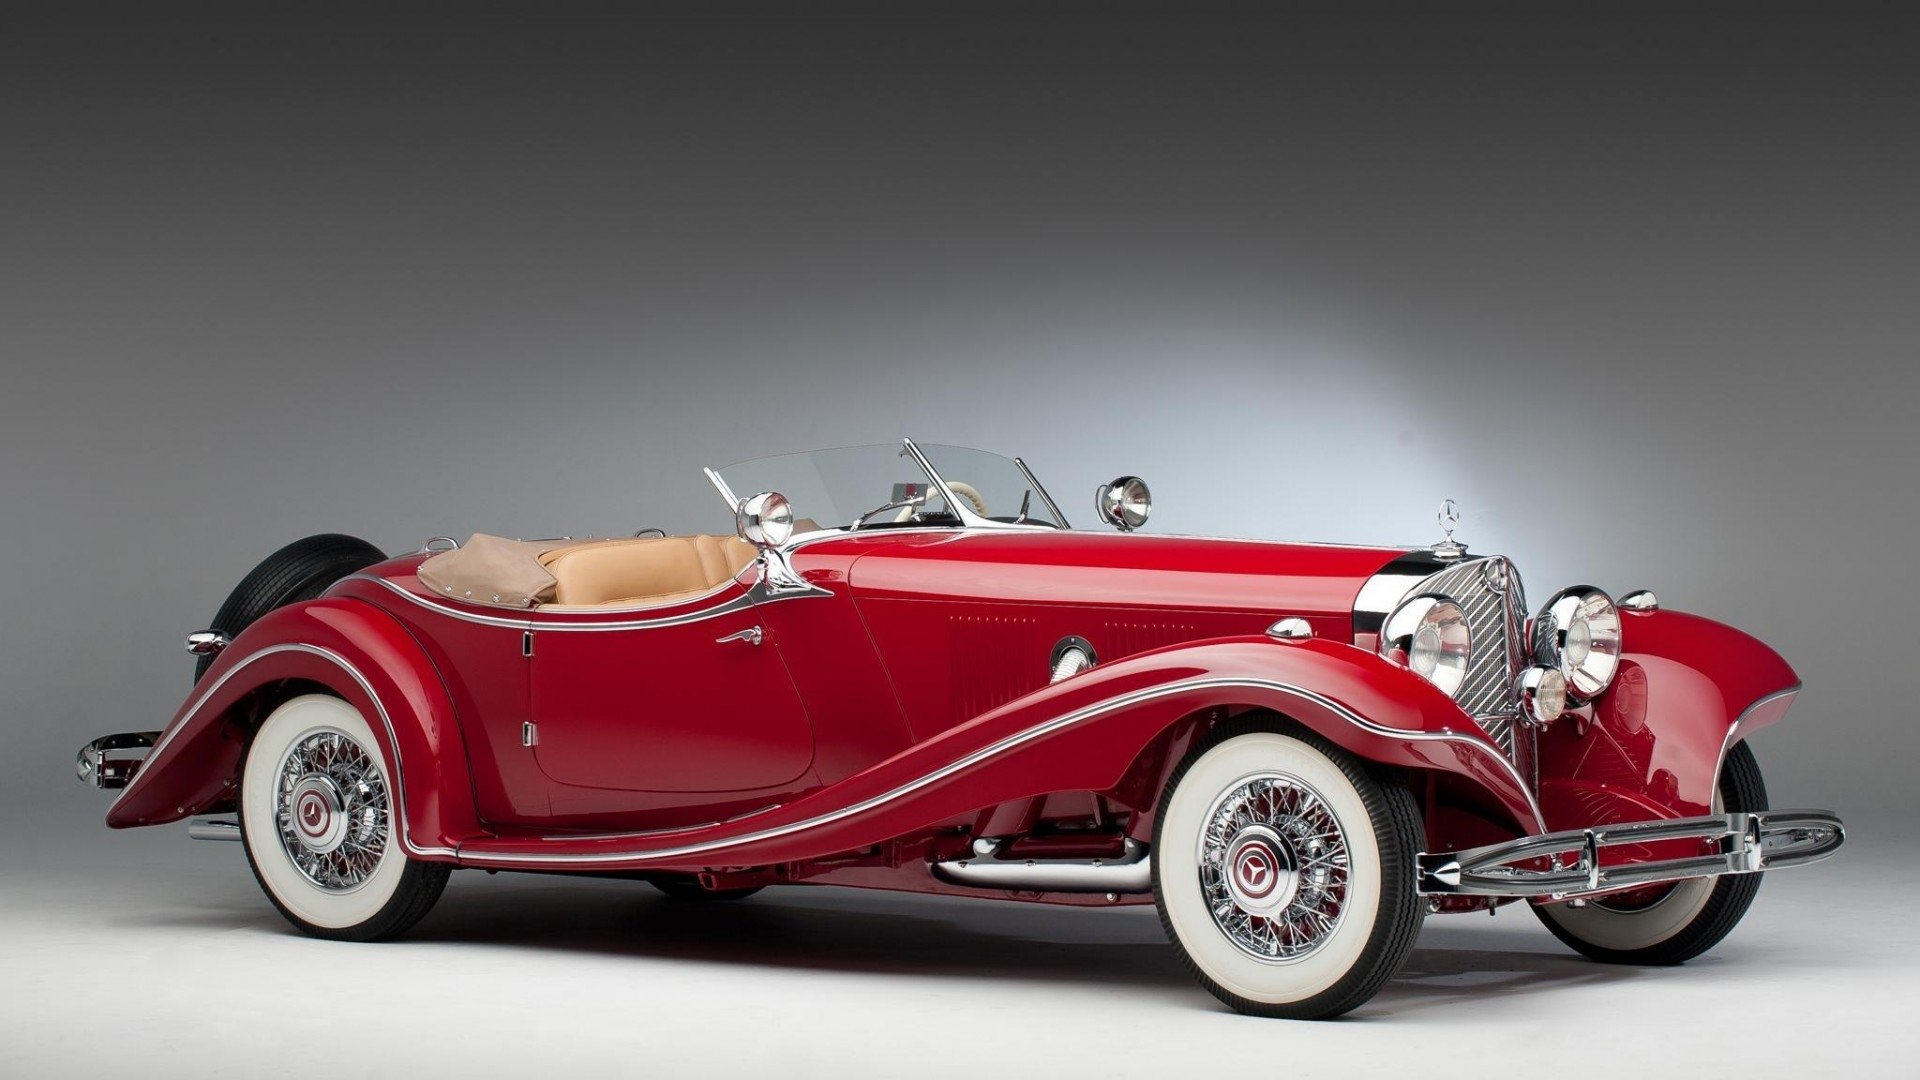 Vehicles - Mercedes-Benz 500K  Luxury Car Roadster Red Car Wallpaper